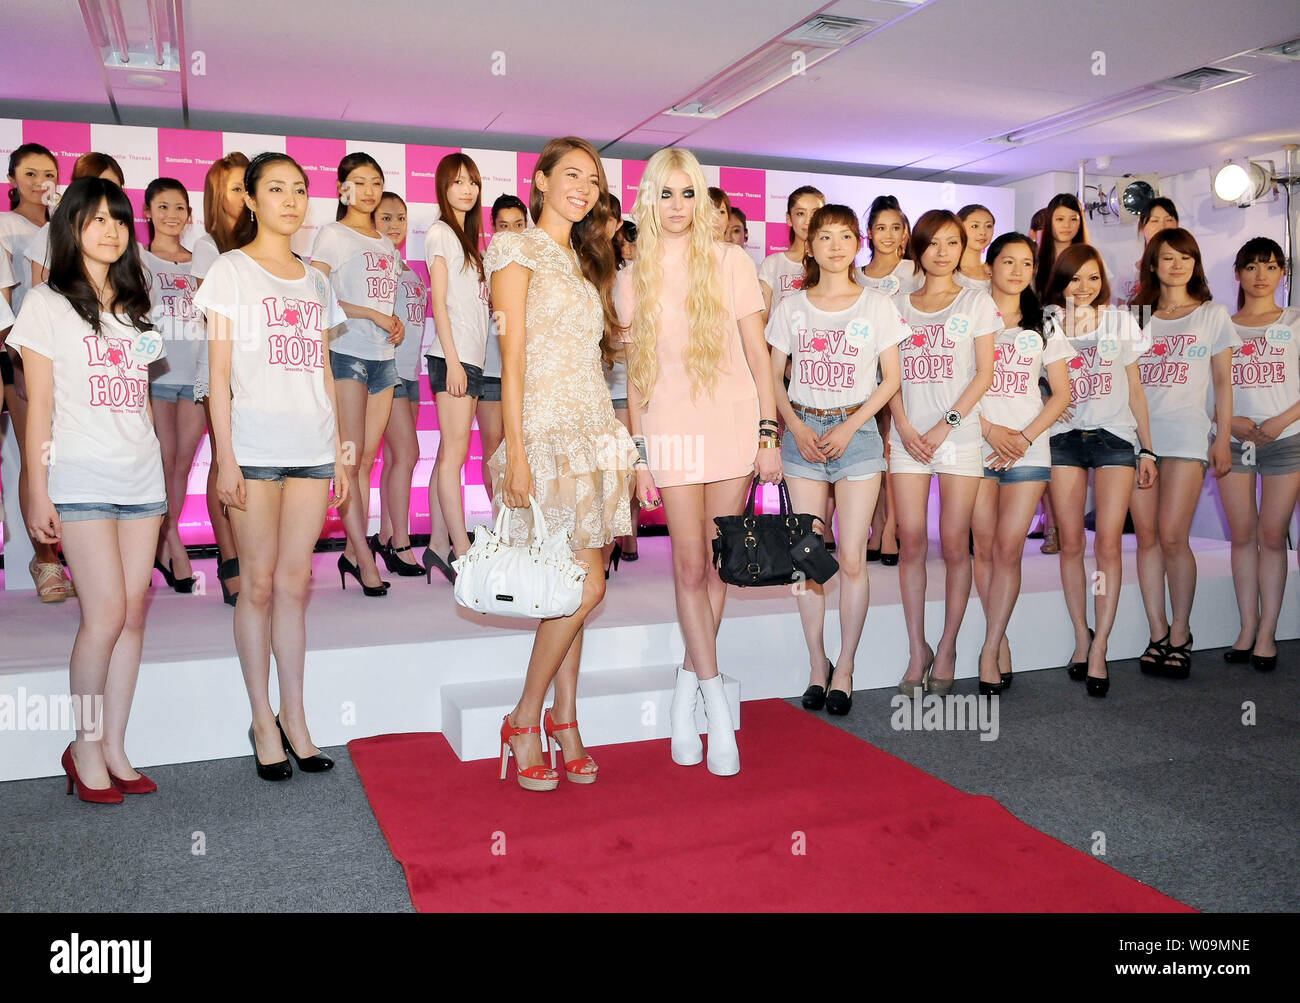 Actress Taylor Momsen (Front, L4) and Japanese model Jessica Michibata (Front, L3) pose with Japanese models for camera during a event at the head office of Samantha Thavasa Japan Limited in Tokyo, Japan on June 18, 2011.     UPI/Keizo Mori - Stock Image